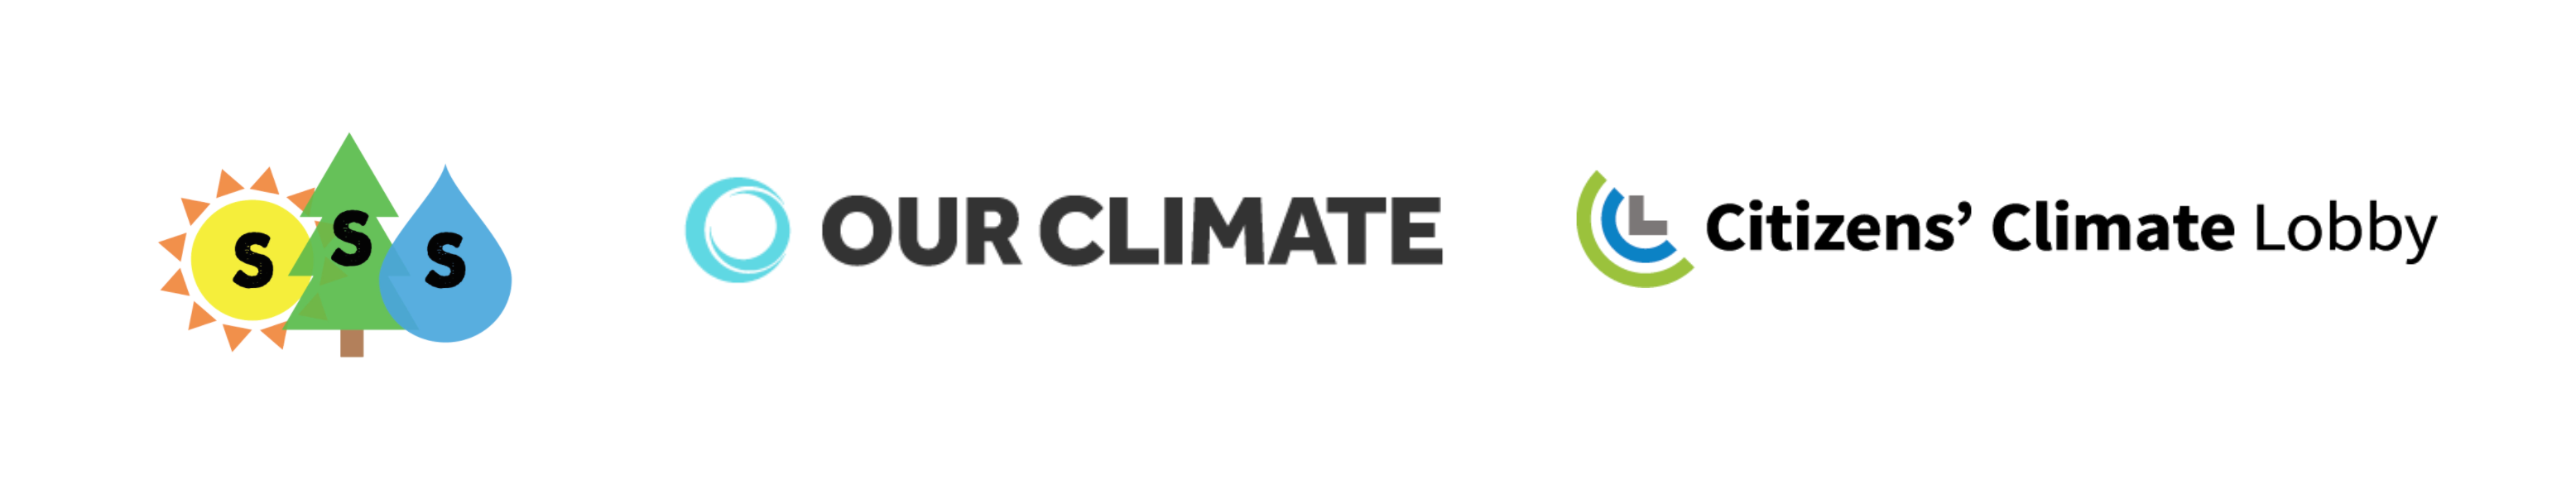 Students for a Sustainable Stanford, Our Climate, and Citizens' Climate Lobby logos